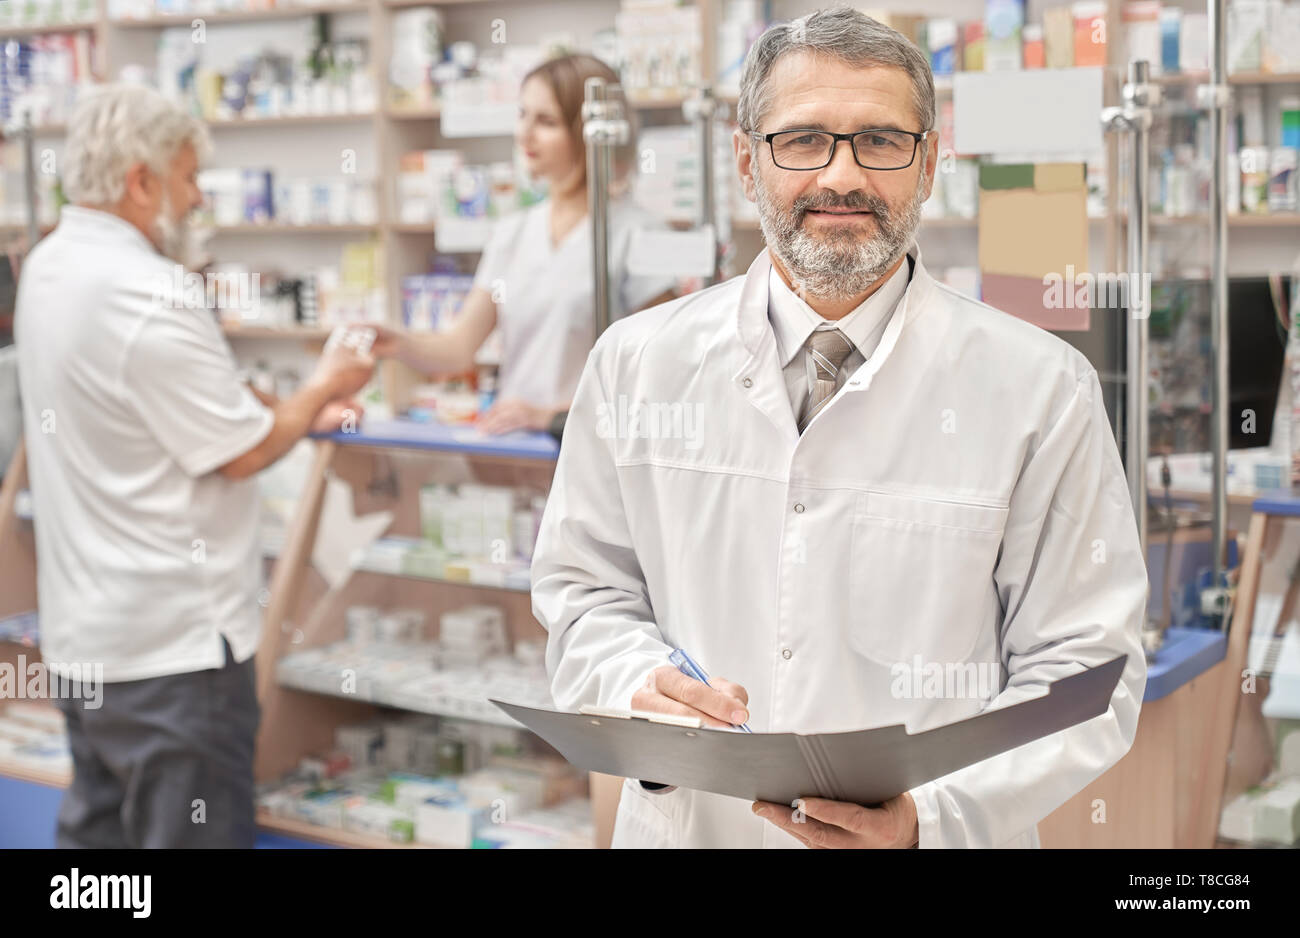 Handsome mature man working in drugstore as pharmacist. Professional specialist wearing in white lab coat and glasses. Bearded man holding folder and pen. Elderly man buiyng medicaments on background. - Stock Image